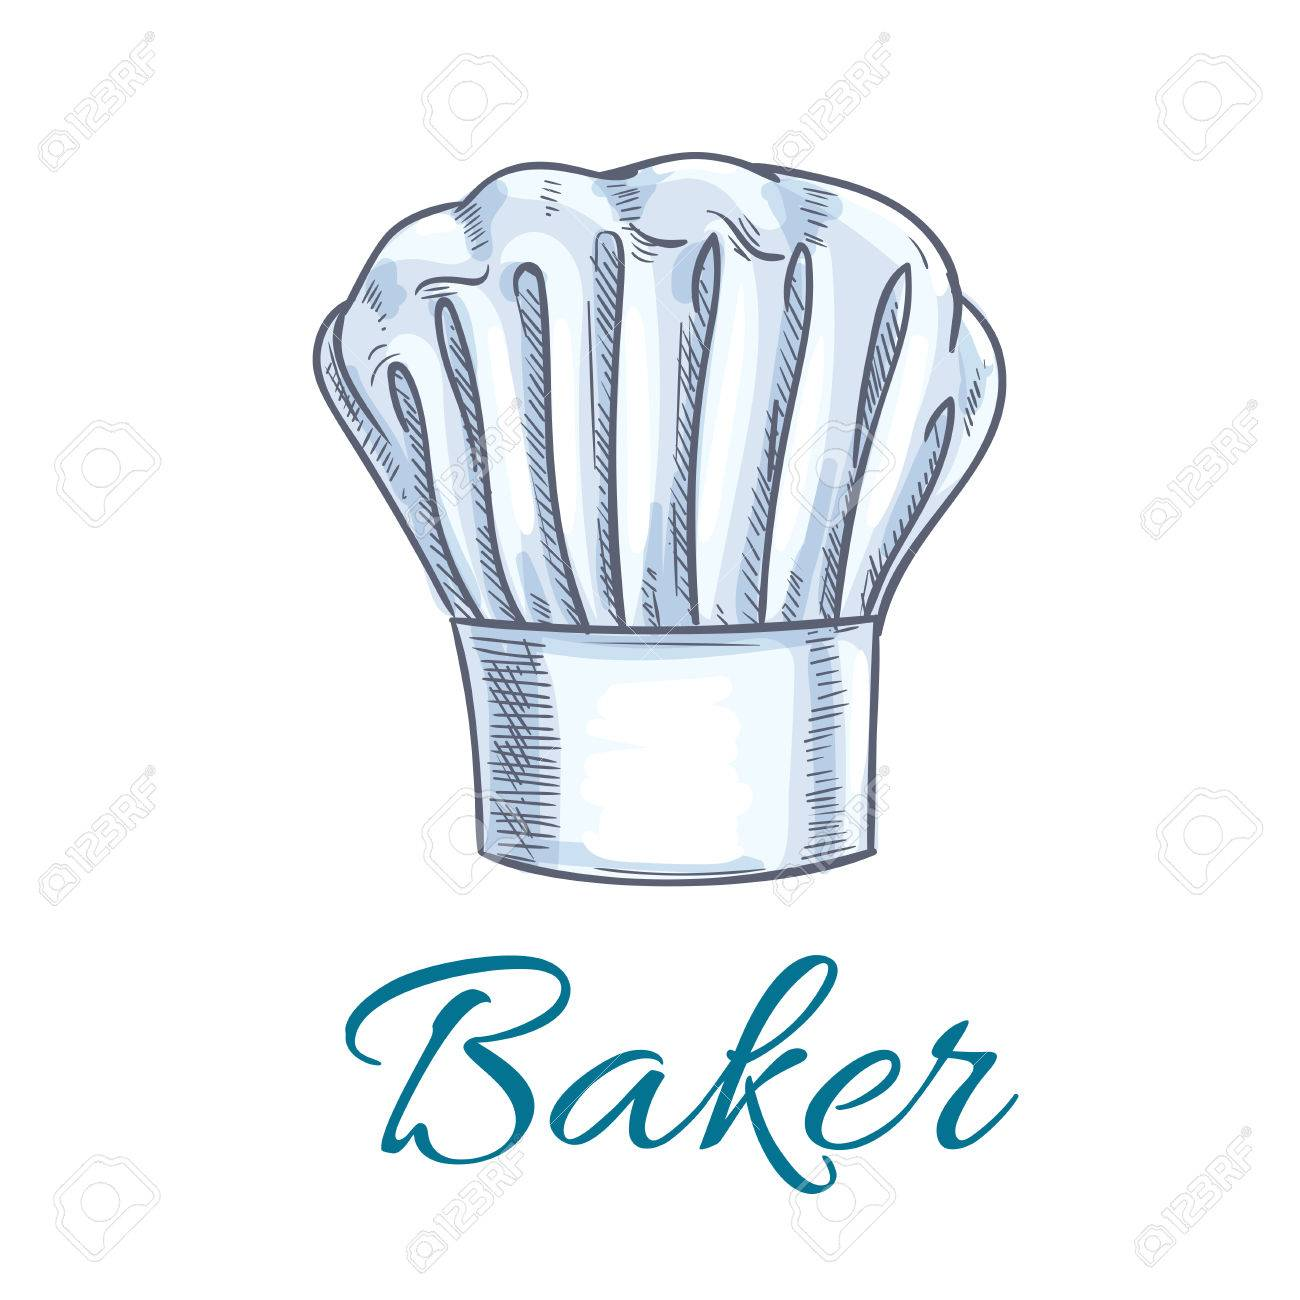 chef hat or baker cap sketch. white toque of a kitchen staff